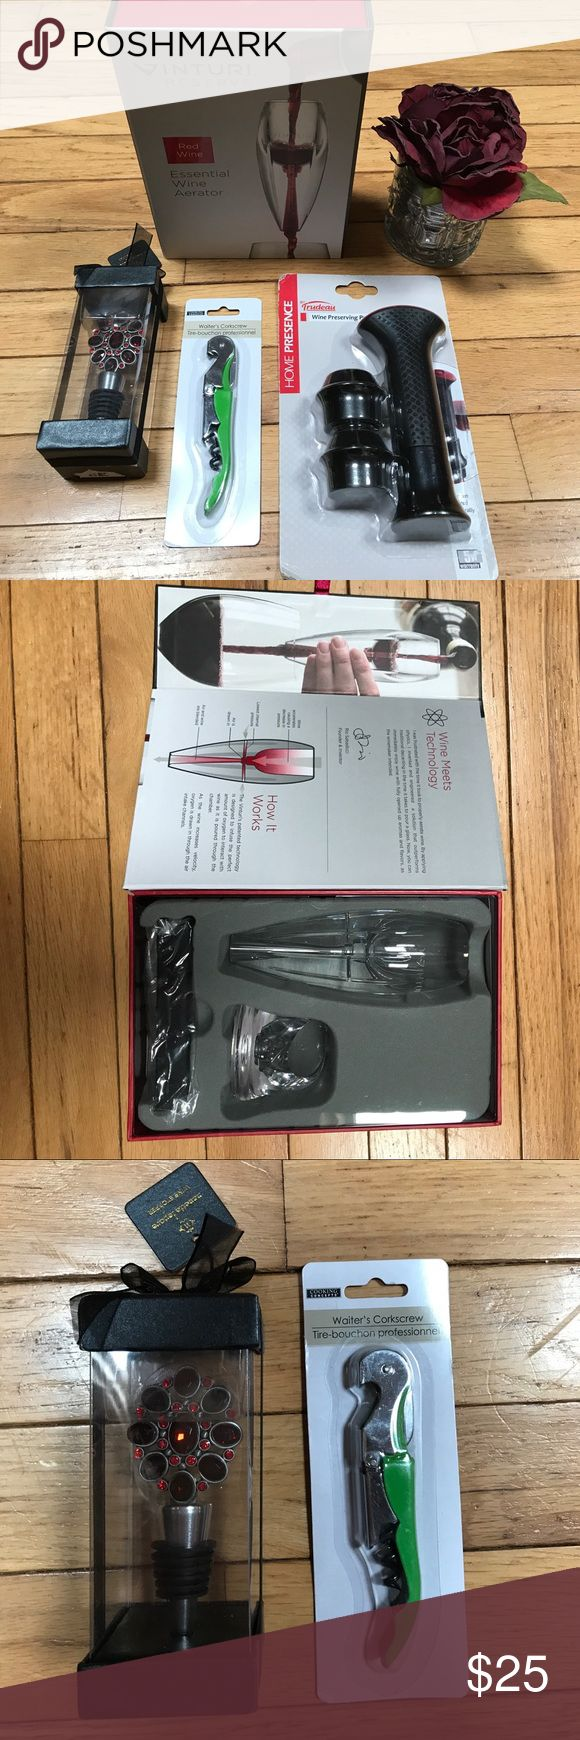 Wine Accessory Bundle NWT This bundle includes a Wine Aerator, Wine Pump and Stoppers, and Corkscrew. Your girlfriend will love this wine bundle as a gift! Inturi Reserve Accessories